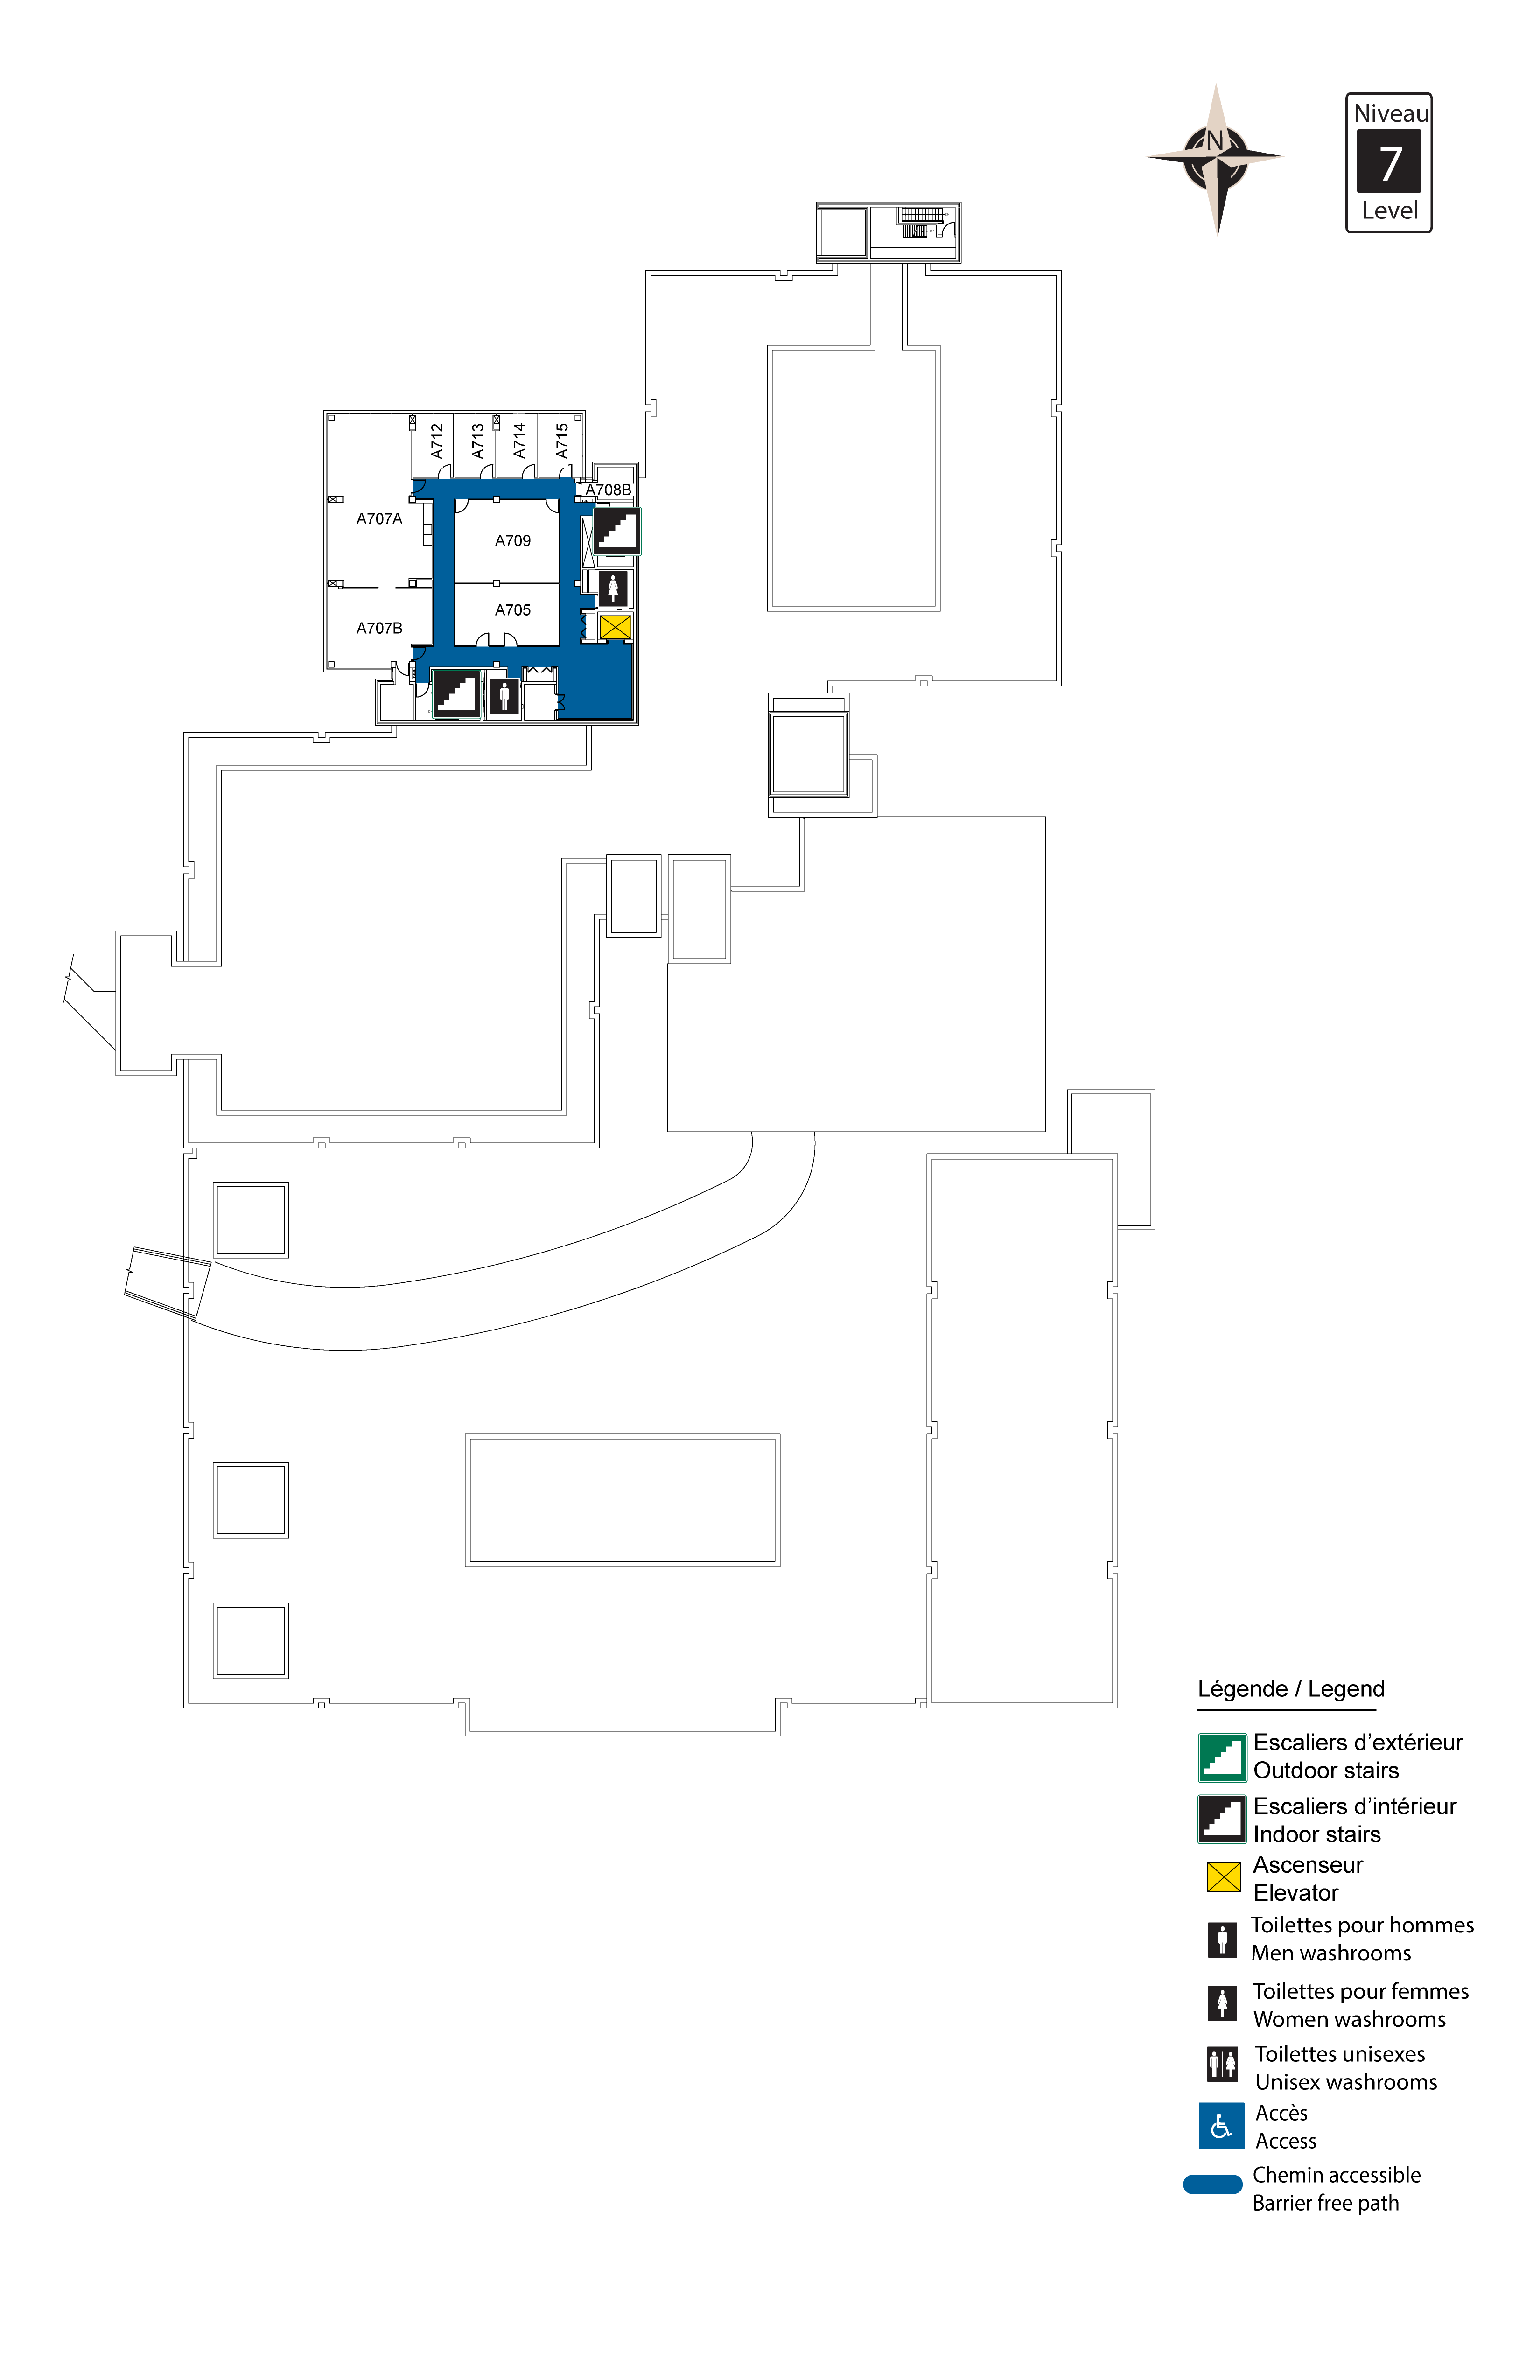 Accessible map - Cby 7